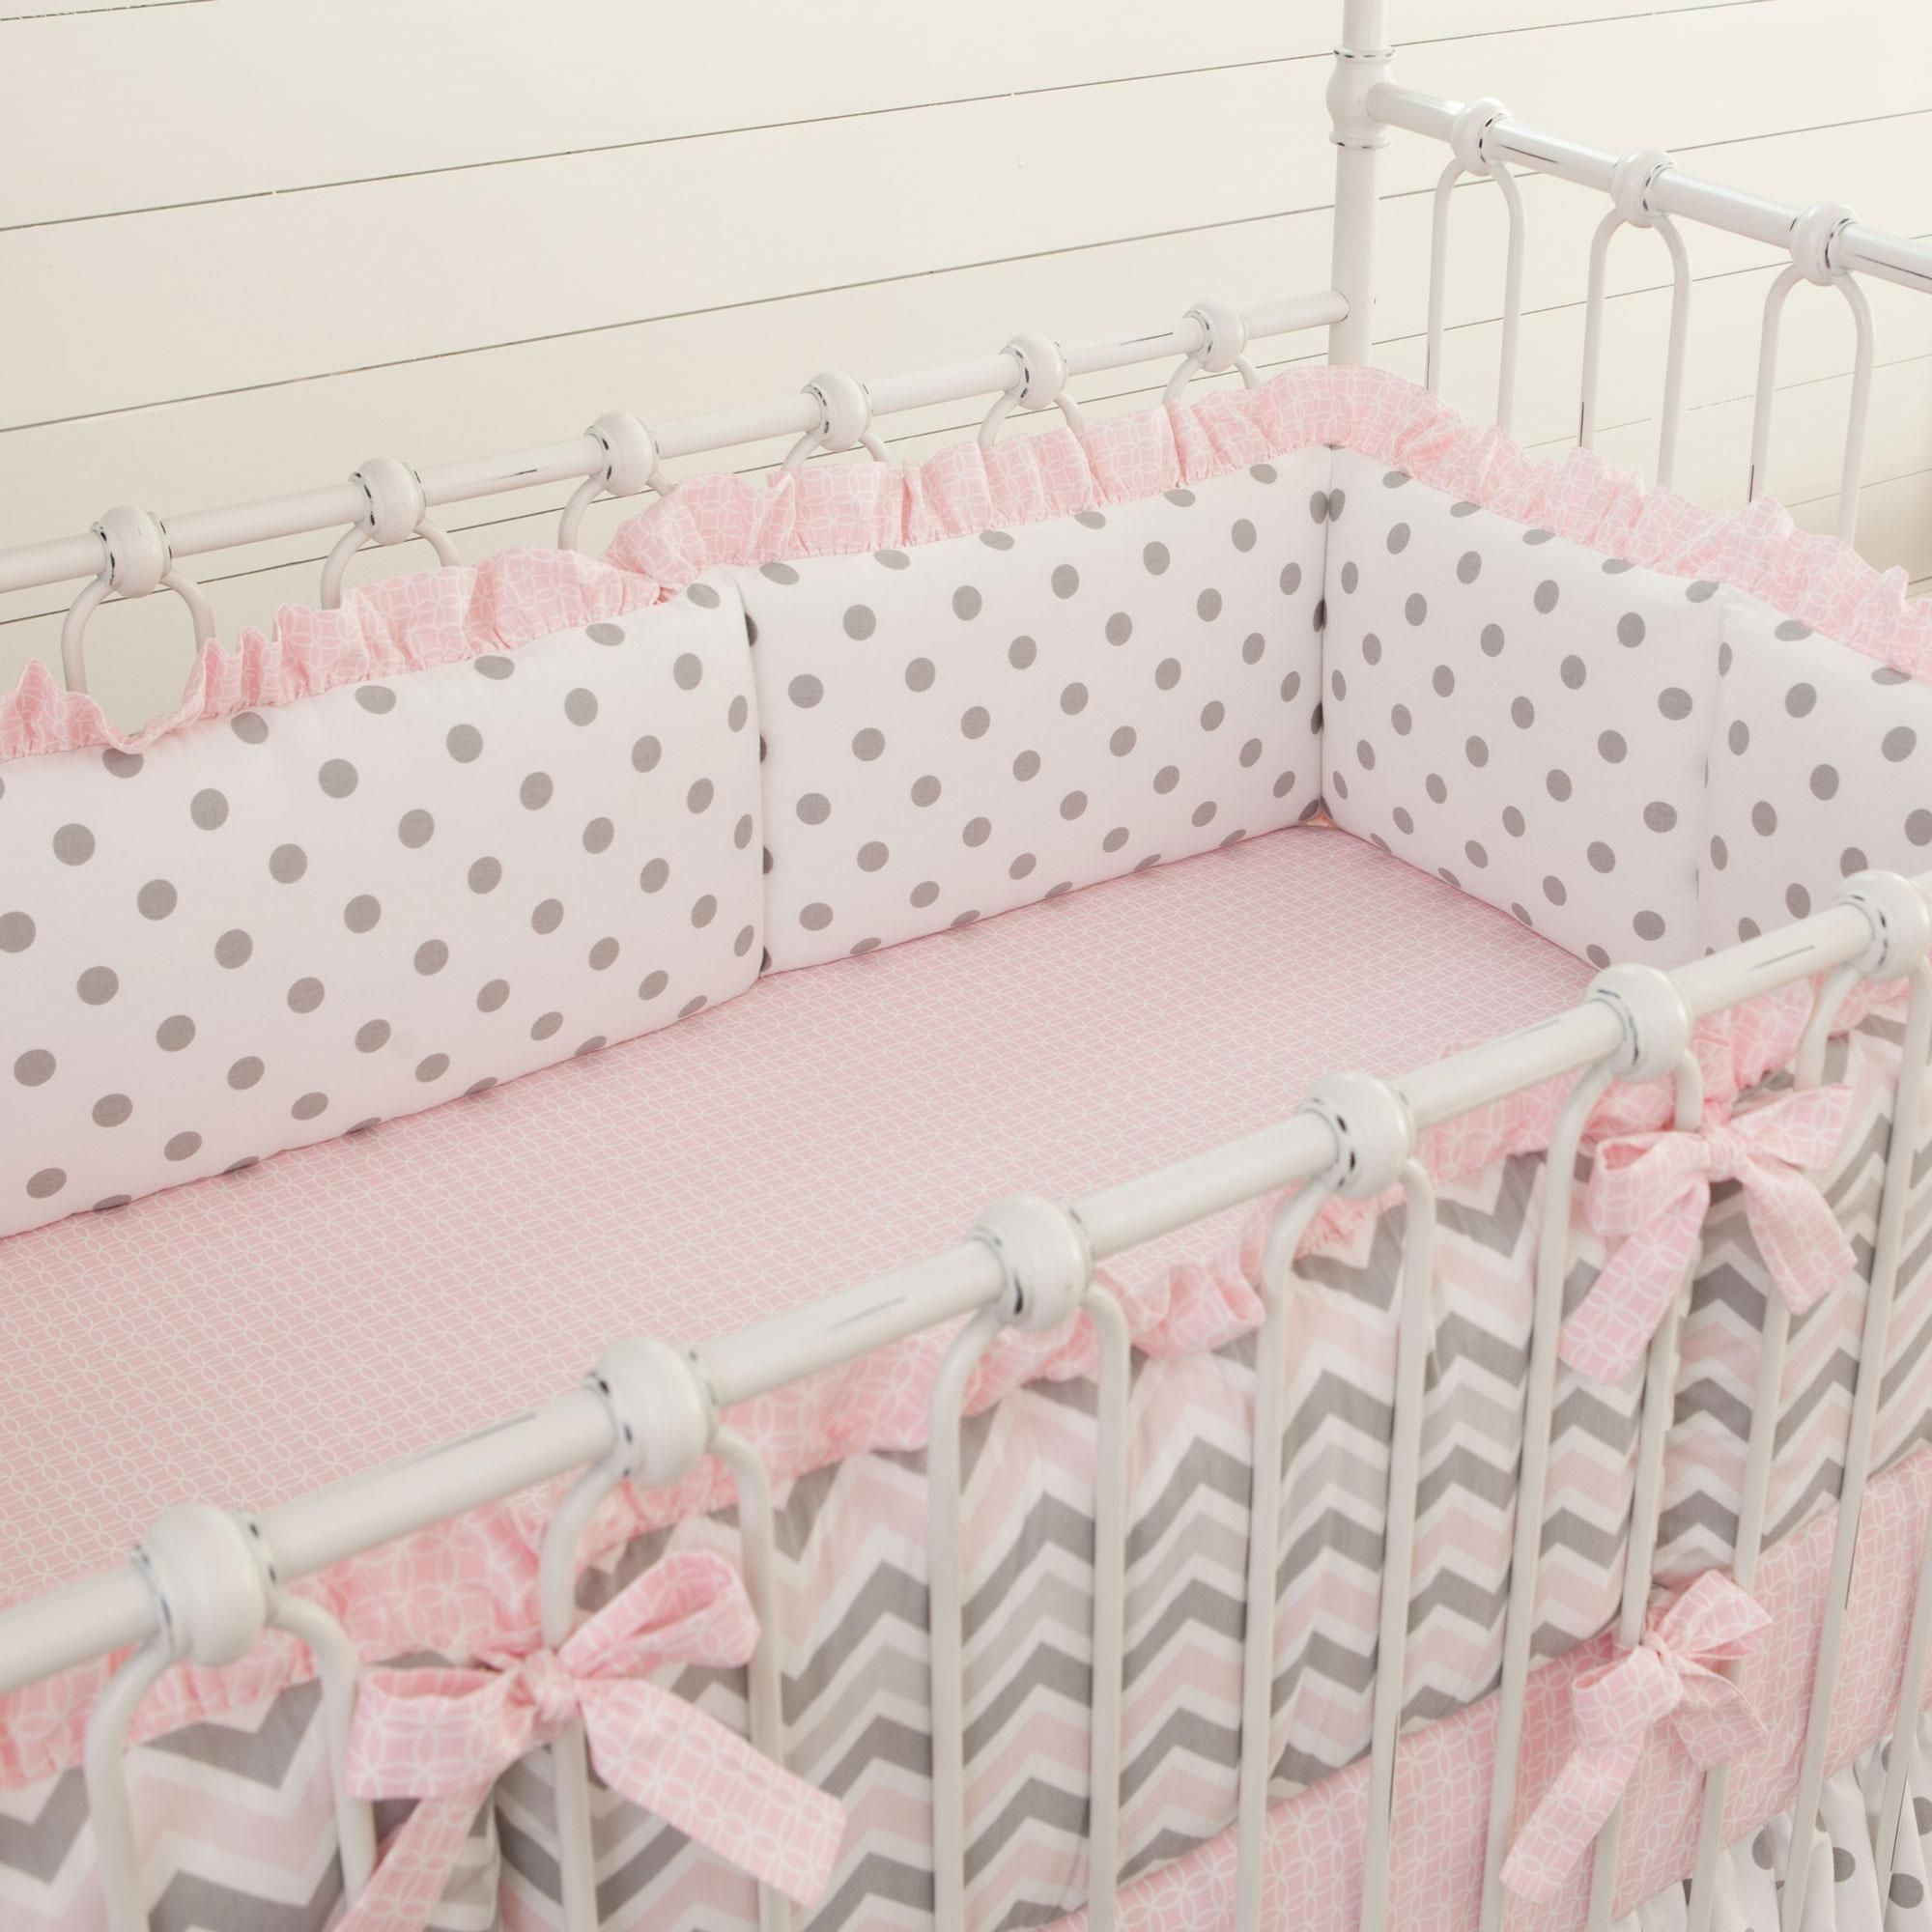 Comfy And Chic Crib Bumpers For Baby Crib Accessories Ideas: Crib Bumpers   Crib  Bumpers